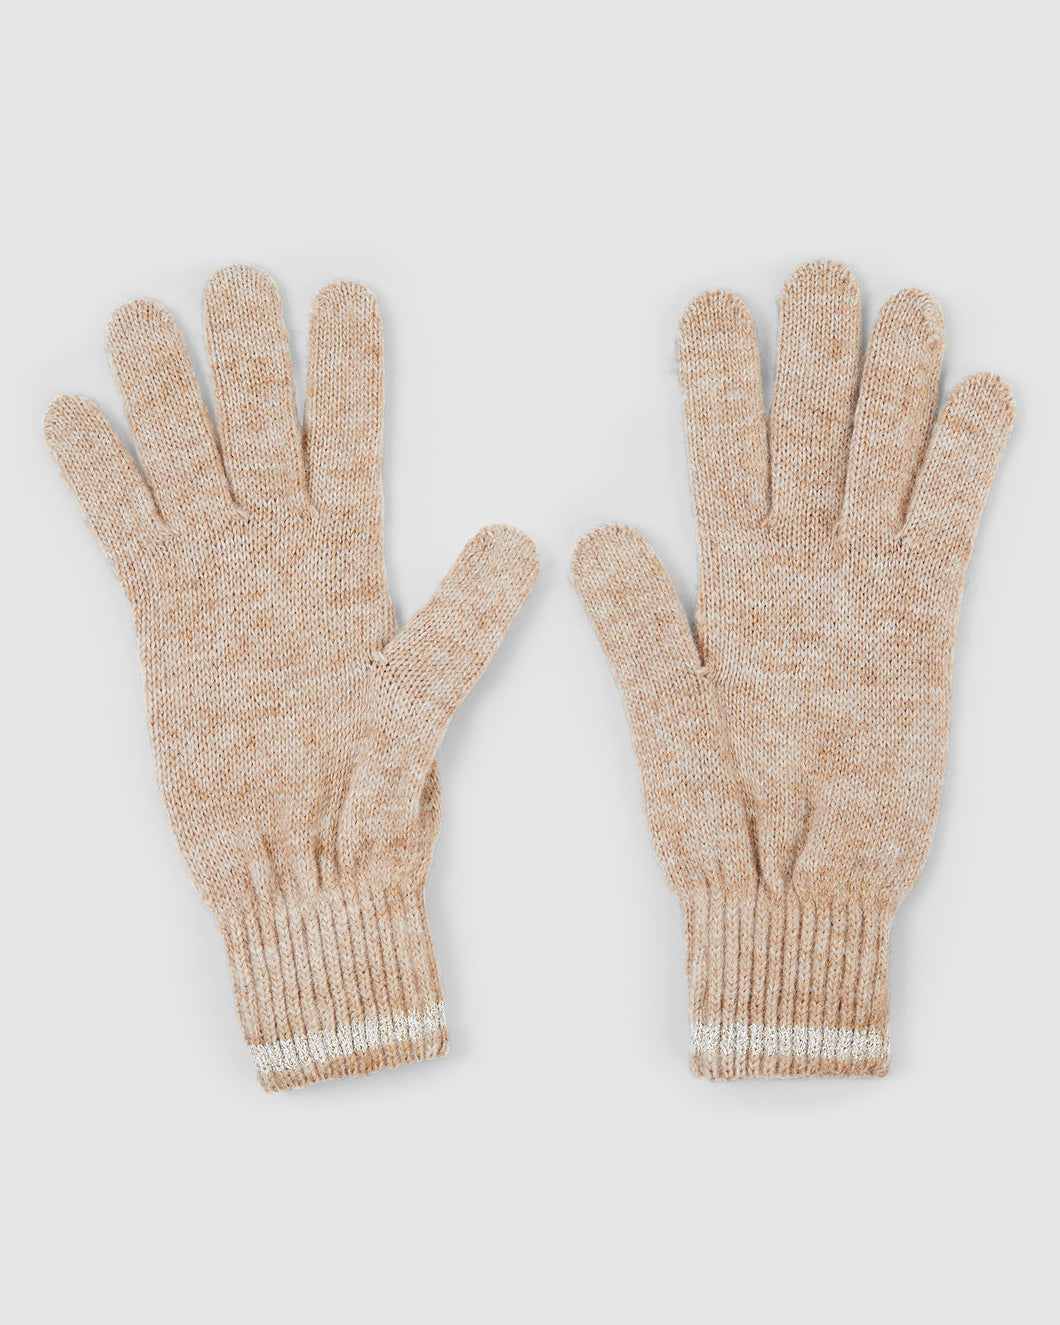 Kate and Confusion camell knit wool and alpaca ladies gloves